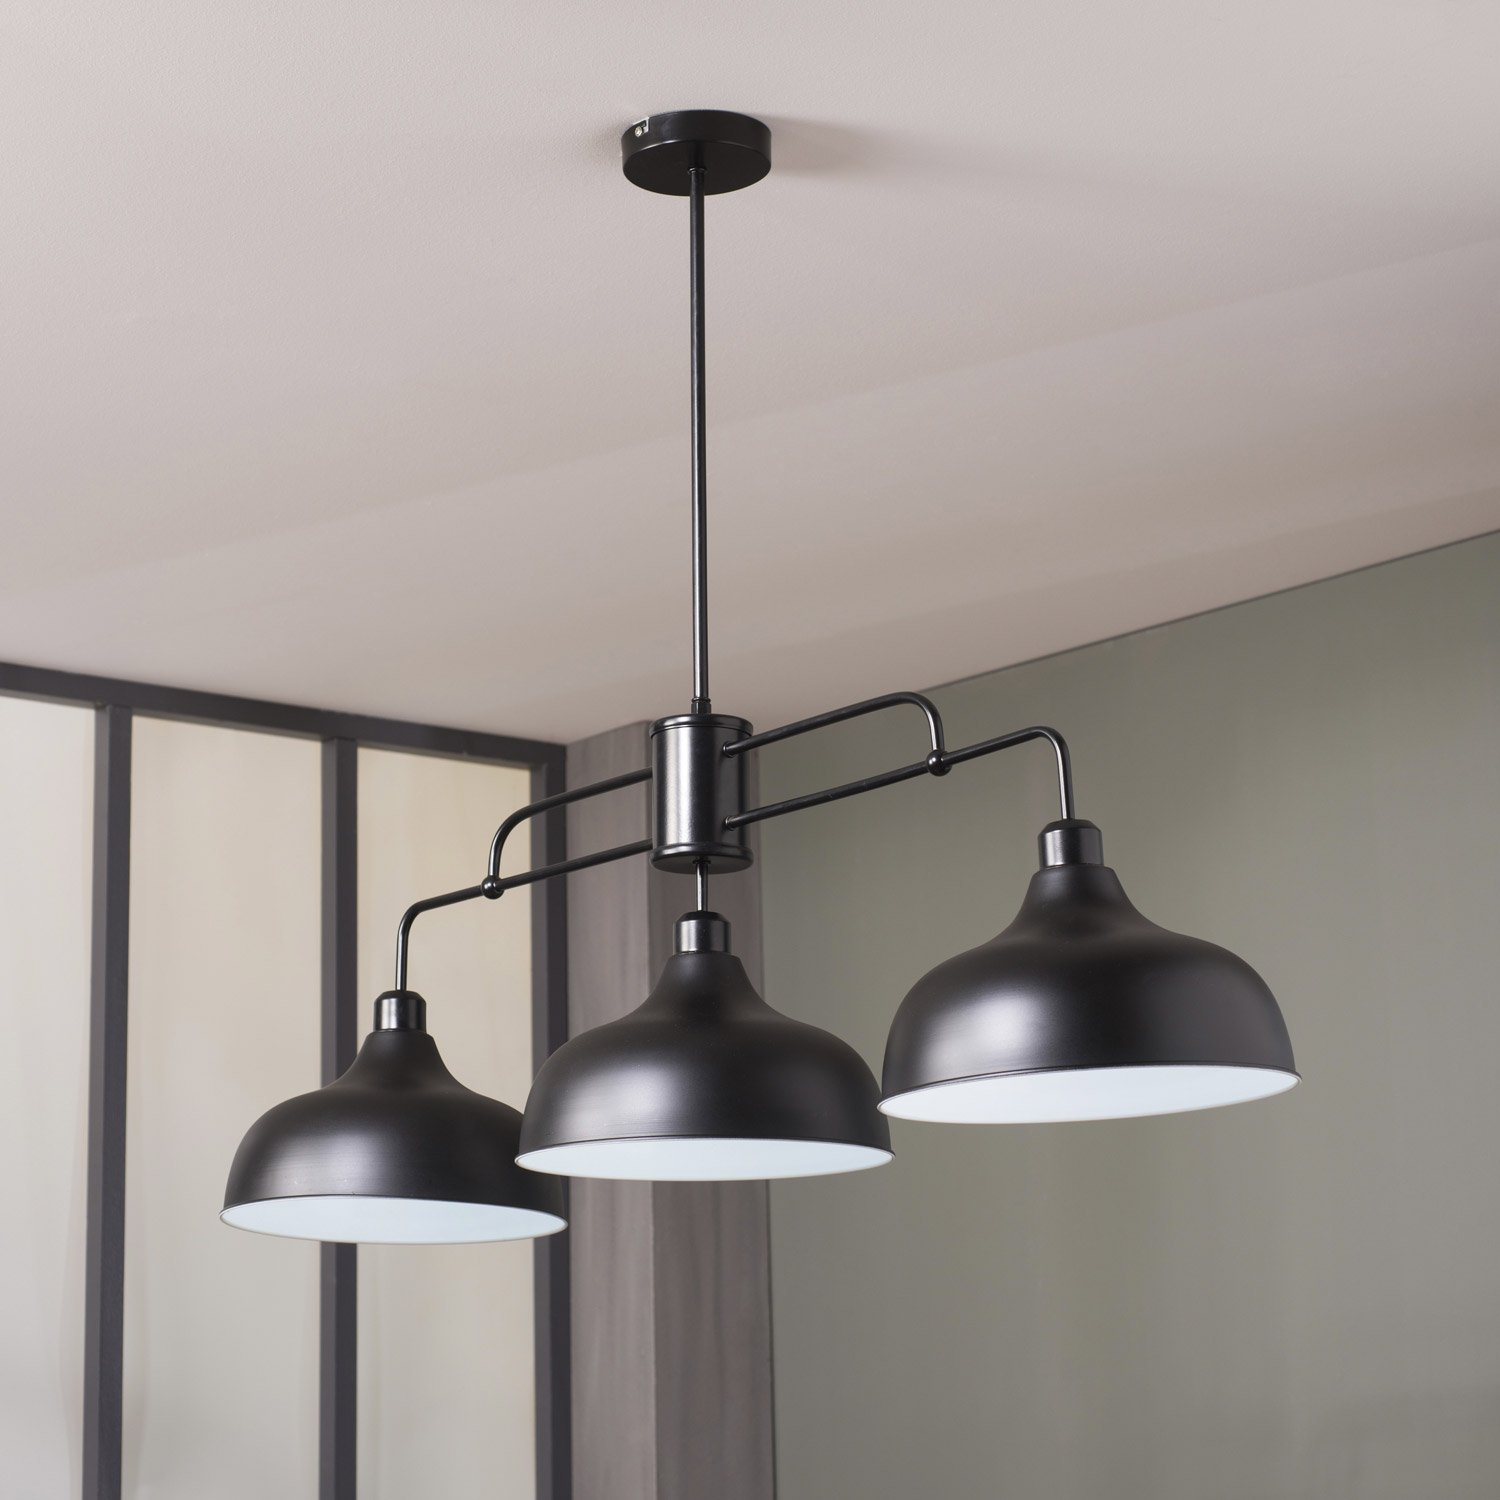 Luminaire leroy merlin for Luminaire design salon